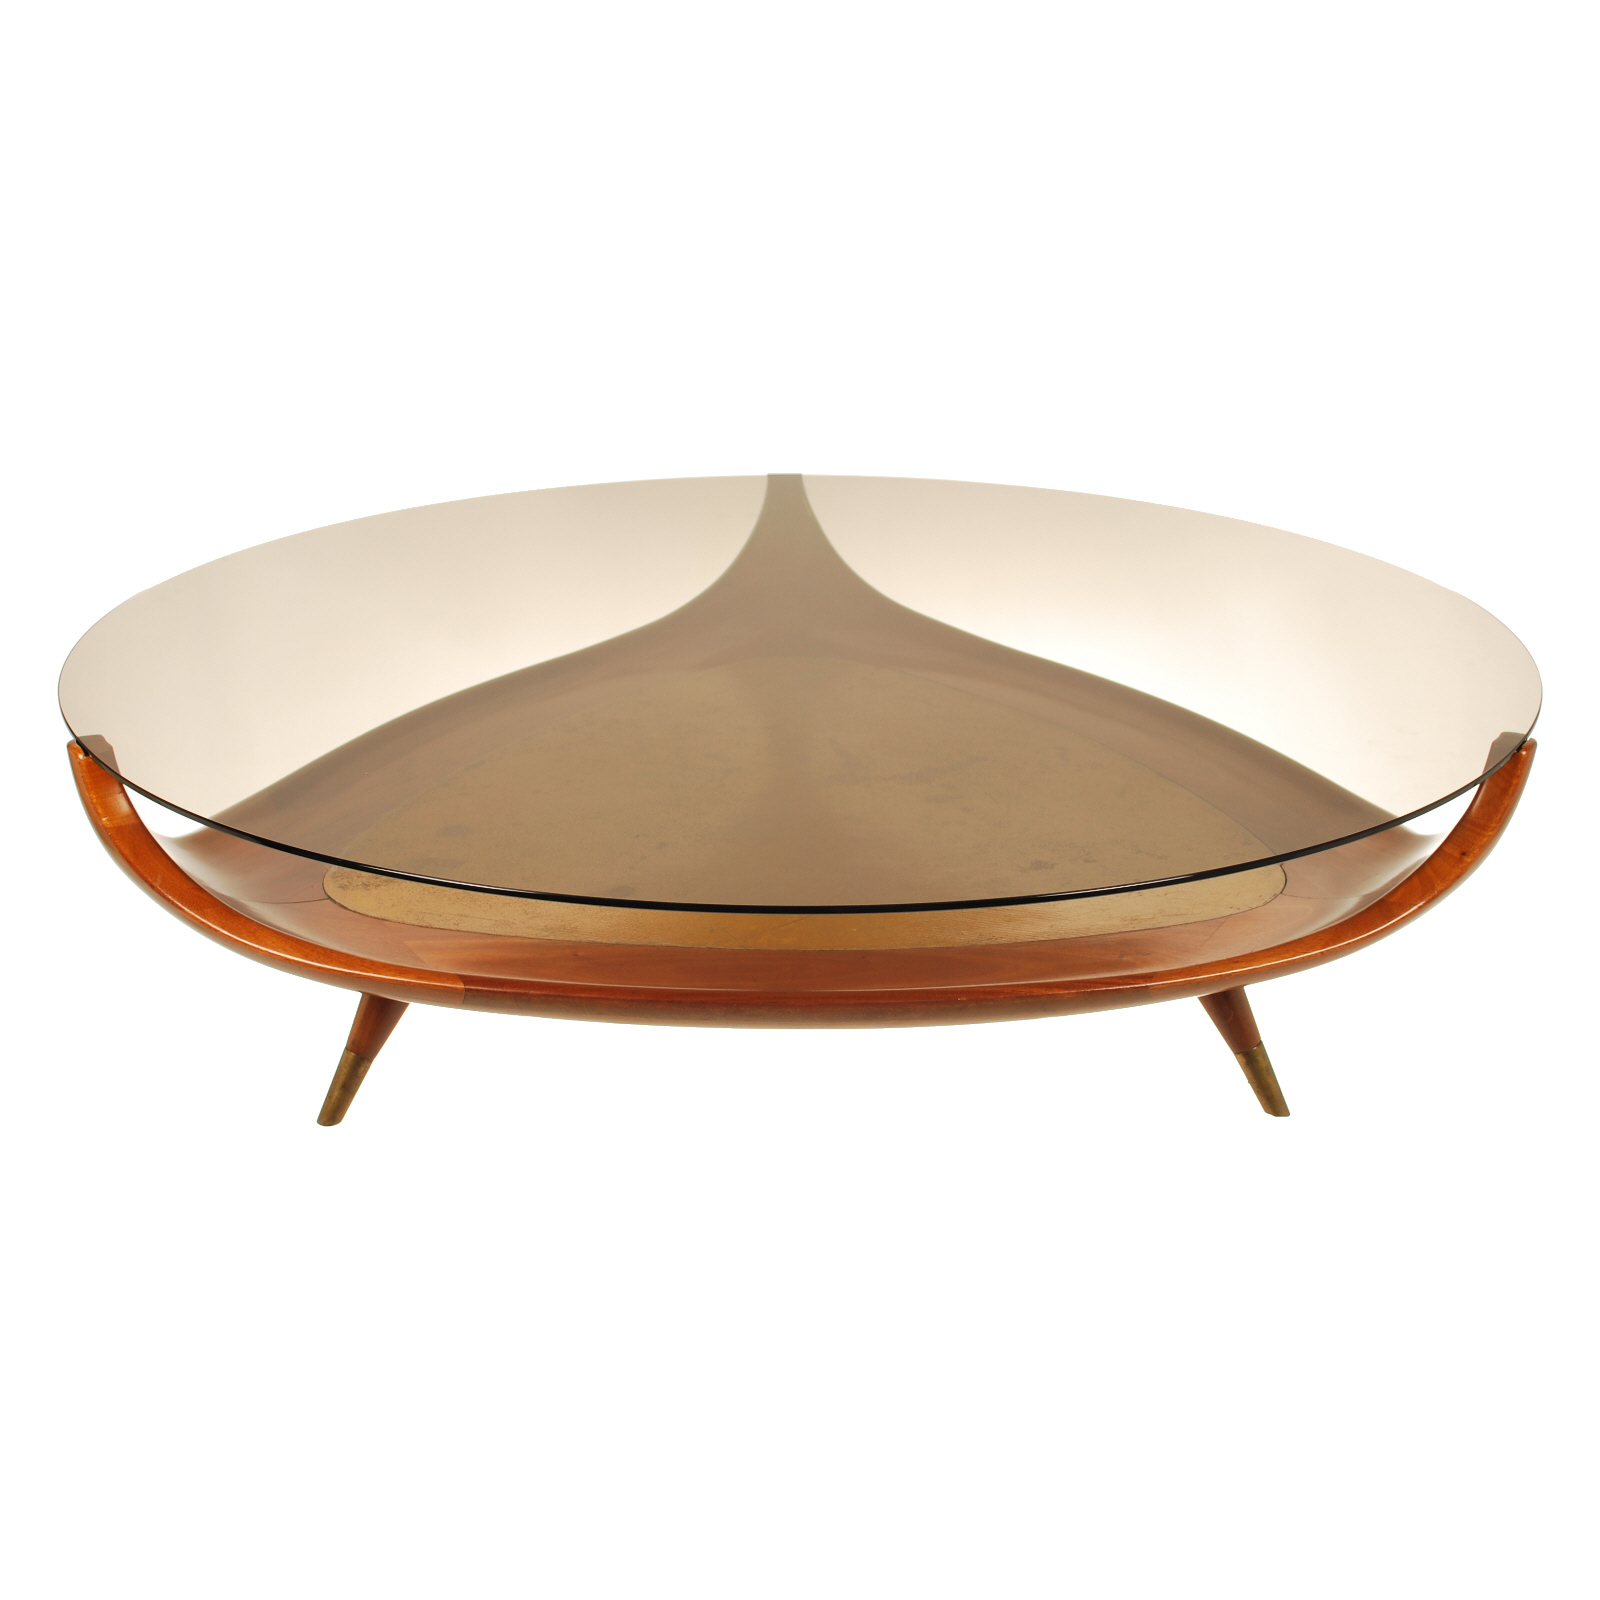 10 Best Unique Round Wood and Glass Coffee Table